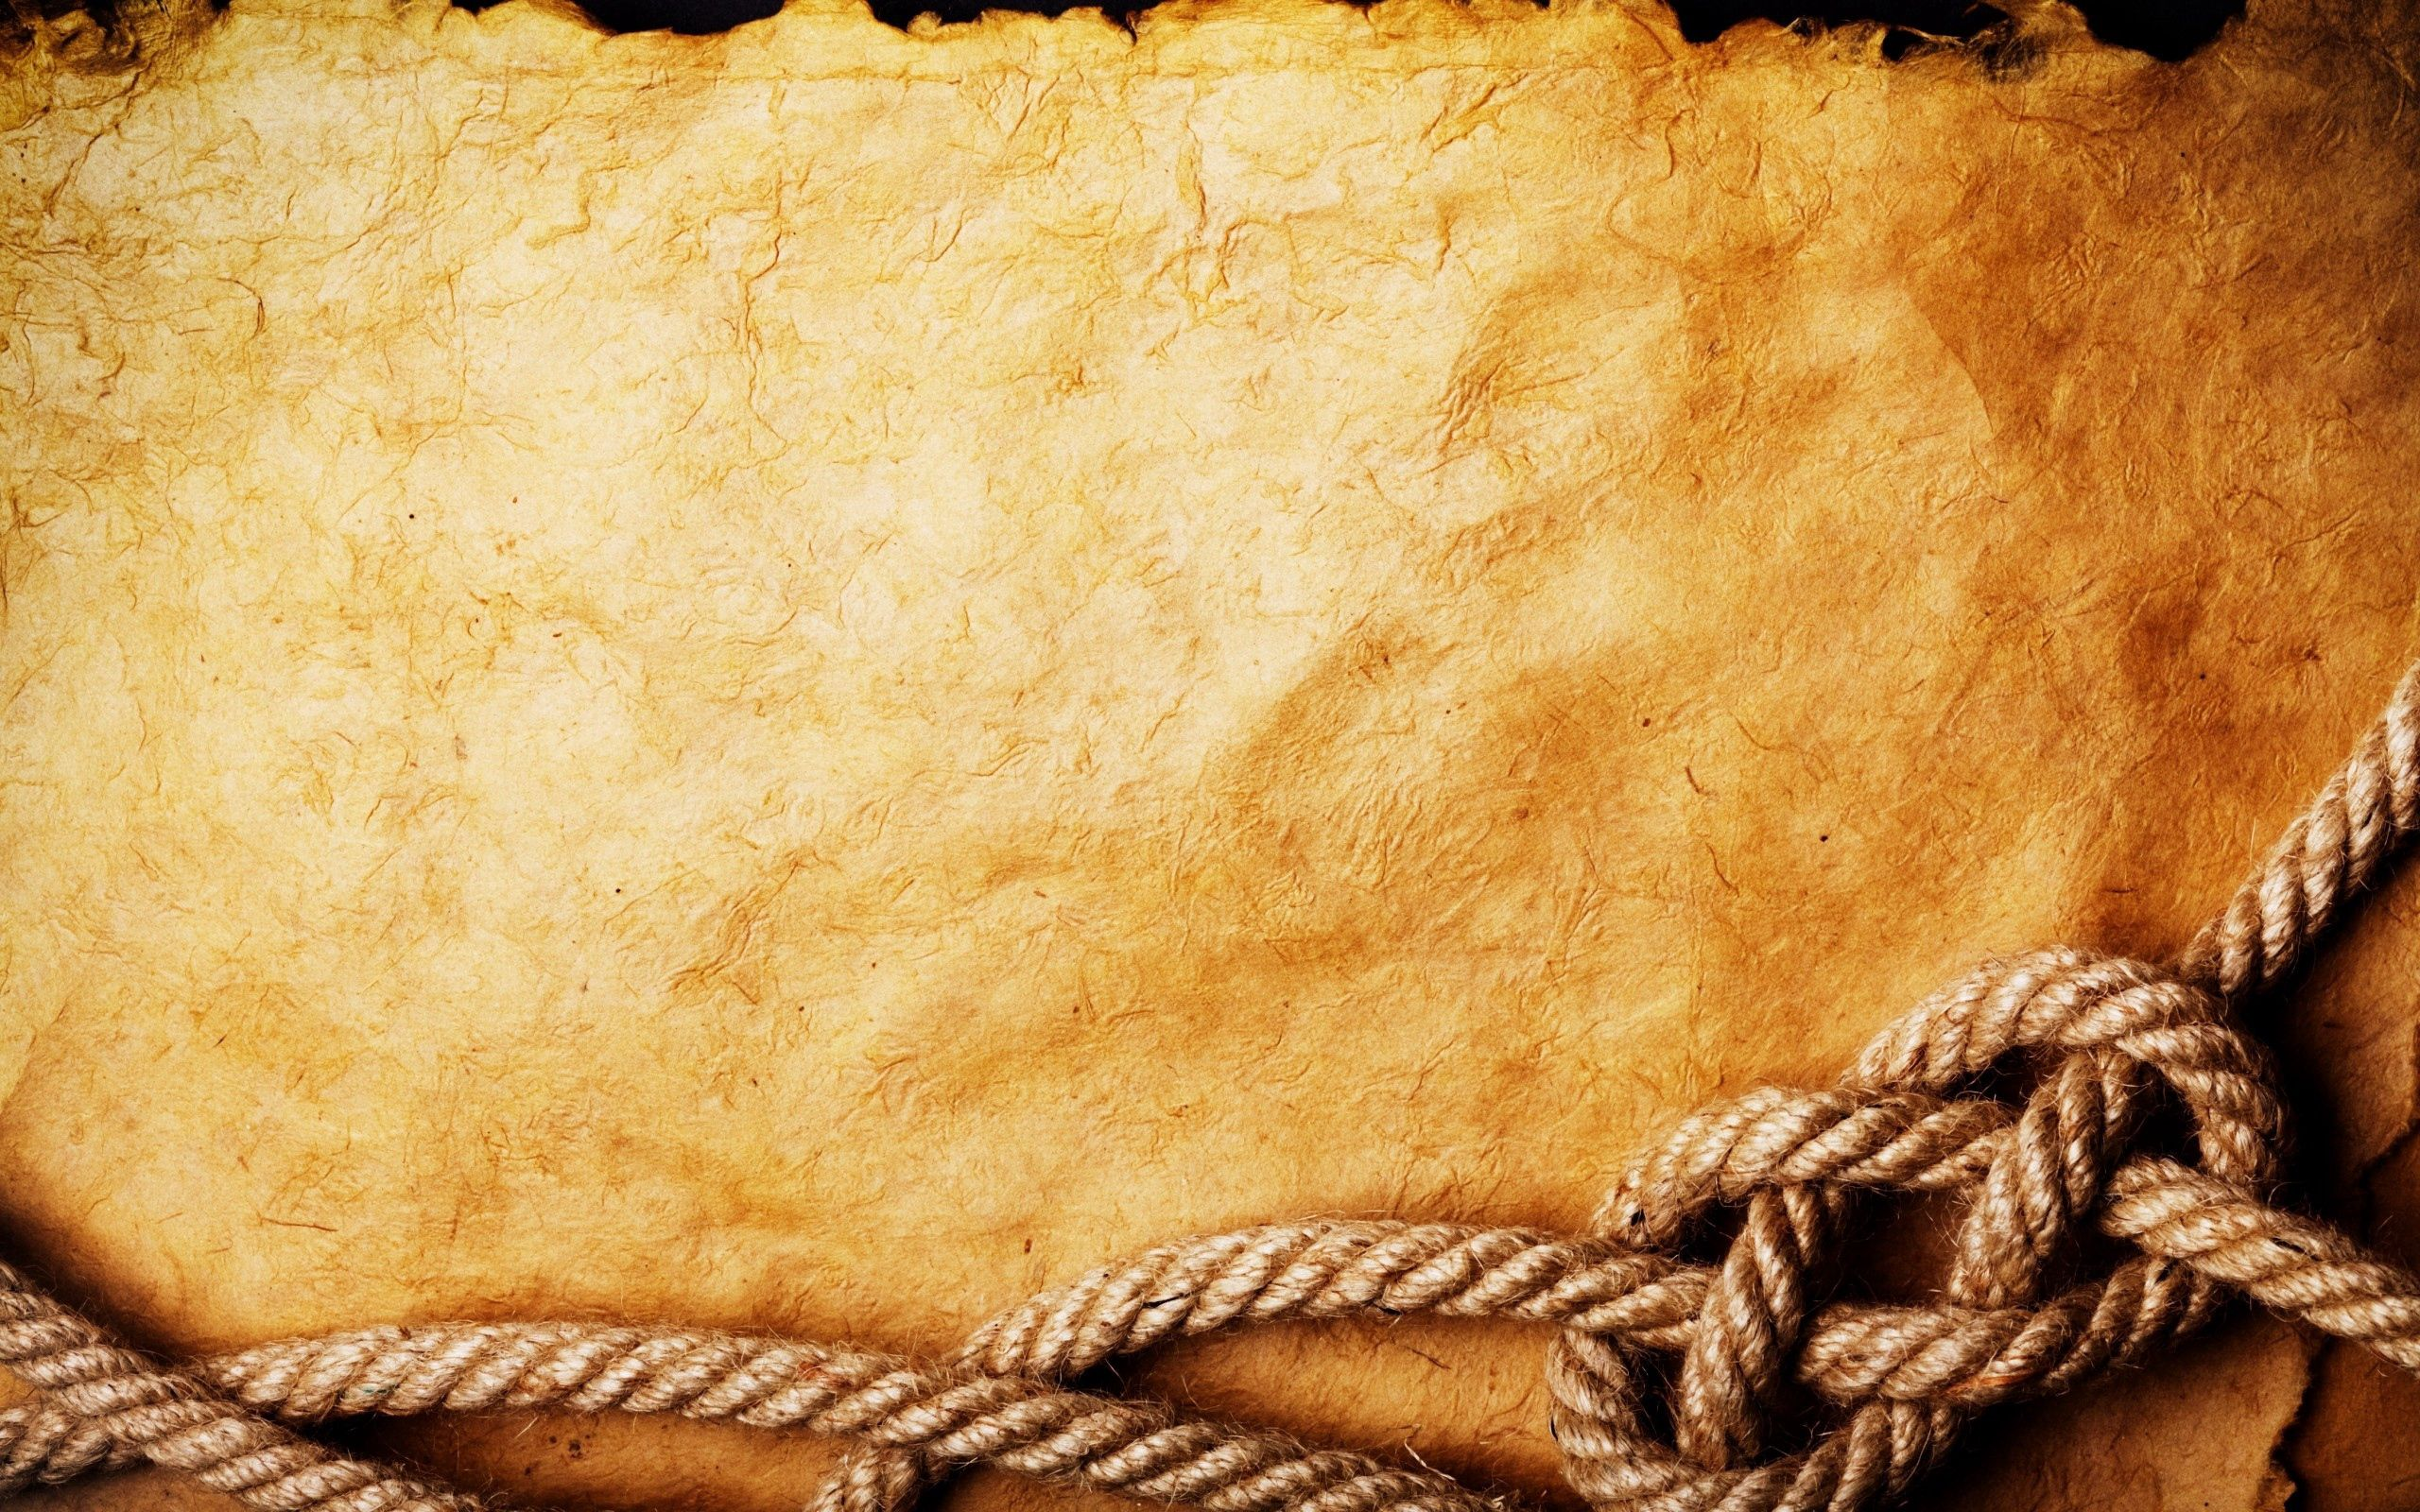 73957 download wallpaper Miscellanea, Miscellaneous, Paper, Rope, Old screensavers and pictures for free